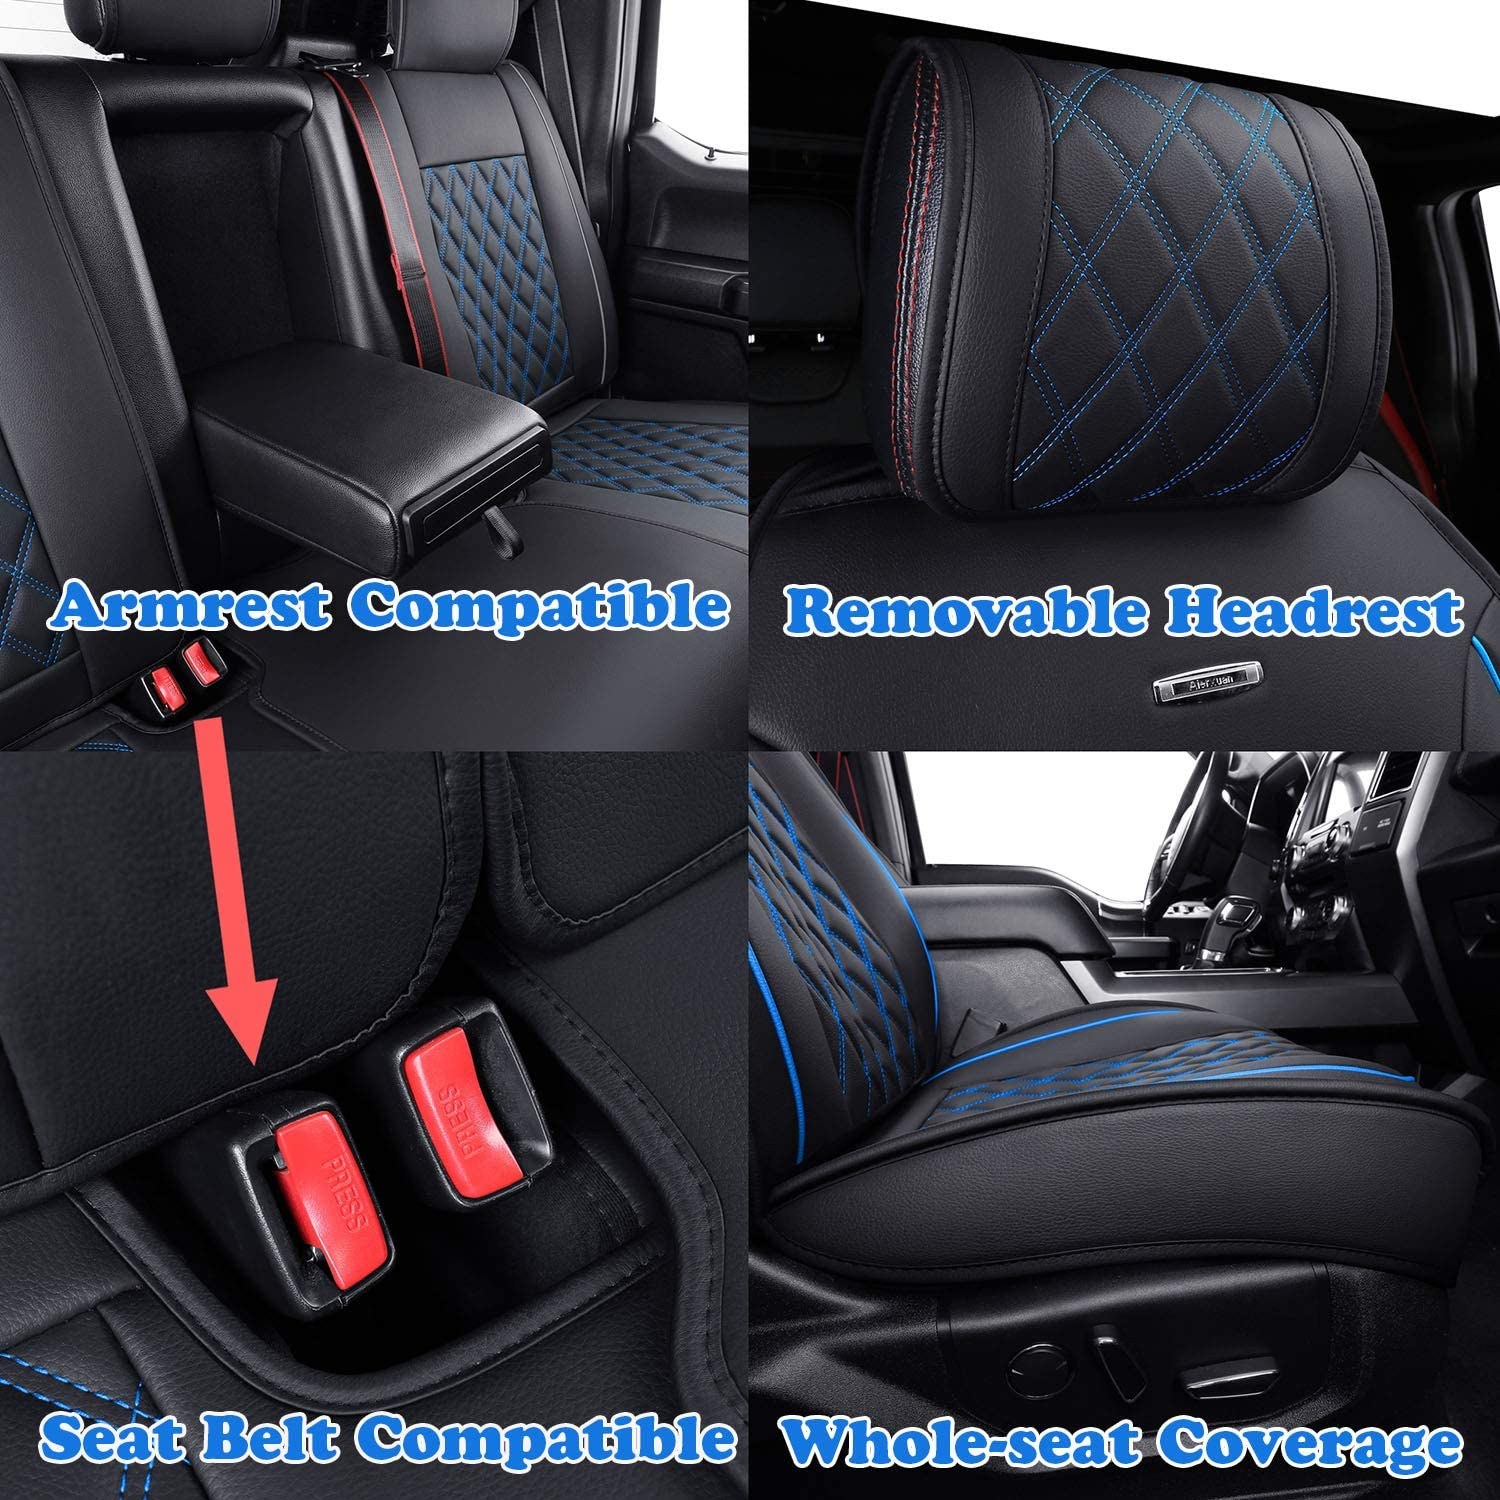 Black and Blue Aierxuan Rear Car Seat Covers with Waterproof Leather Automotive Vehicle Cushion Cover Universal fit for Most Cars-YGPK Series